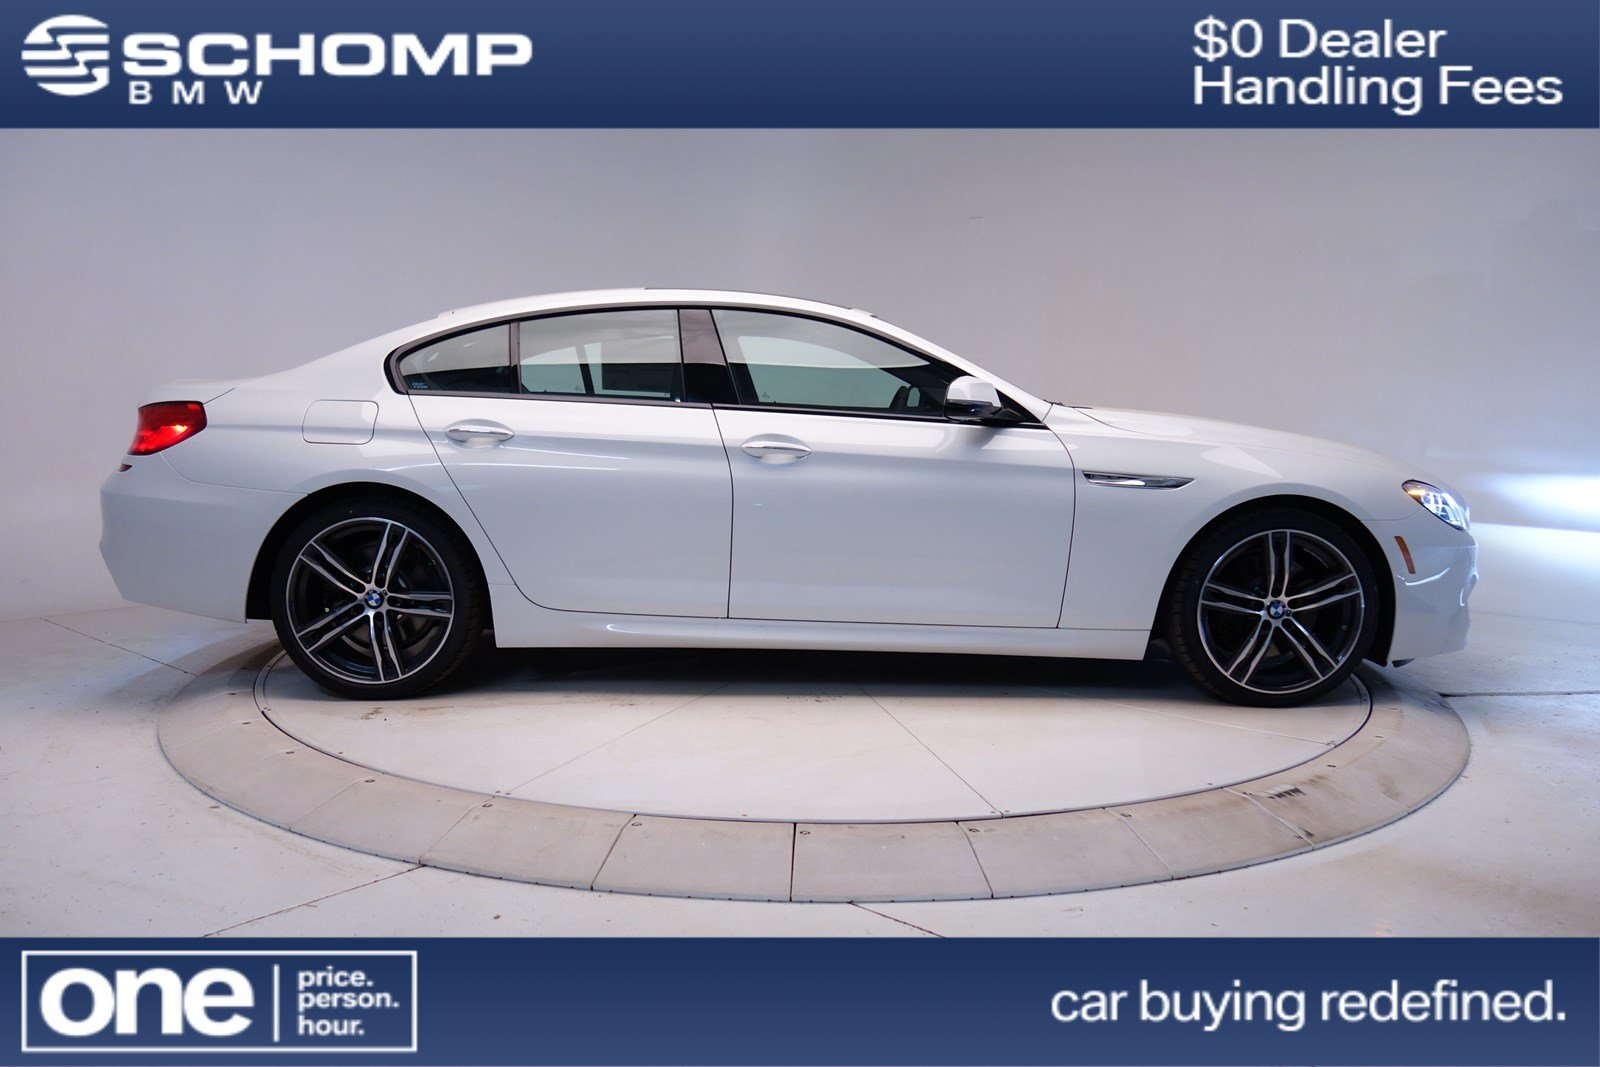 New BMW Series I XDrive Gran Coupe Dr Car In Highlands - 6 series bmw price